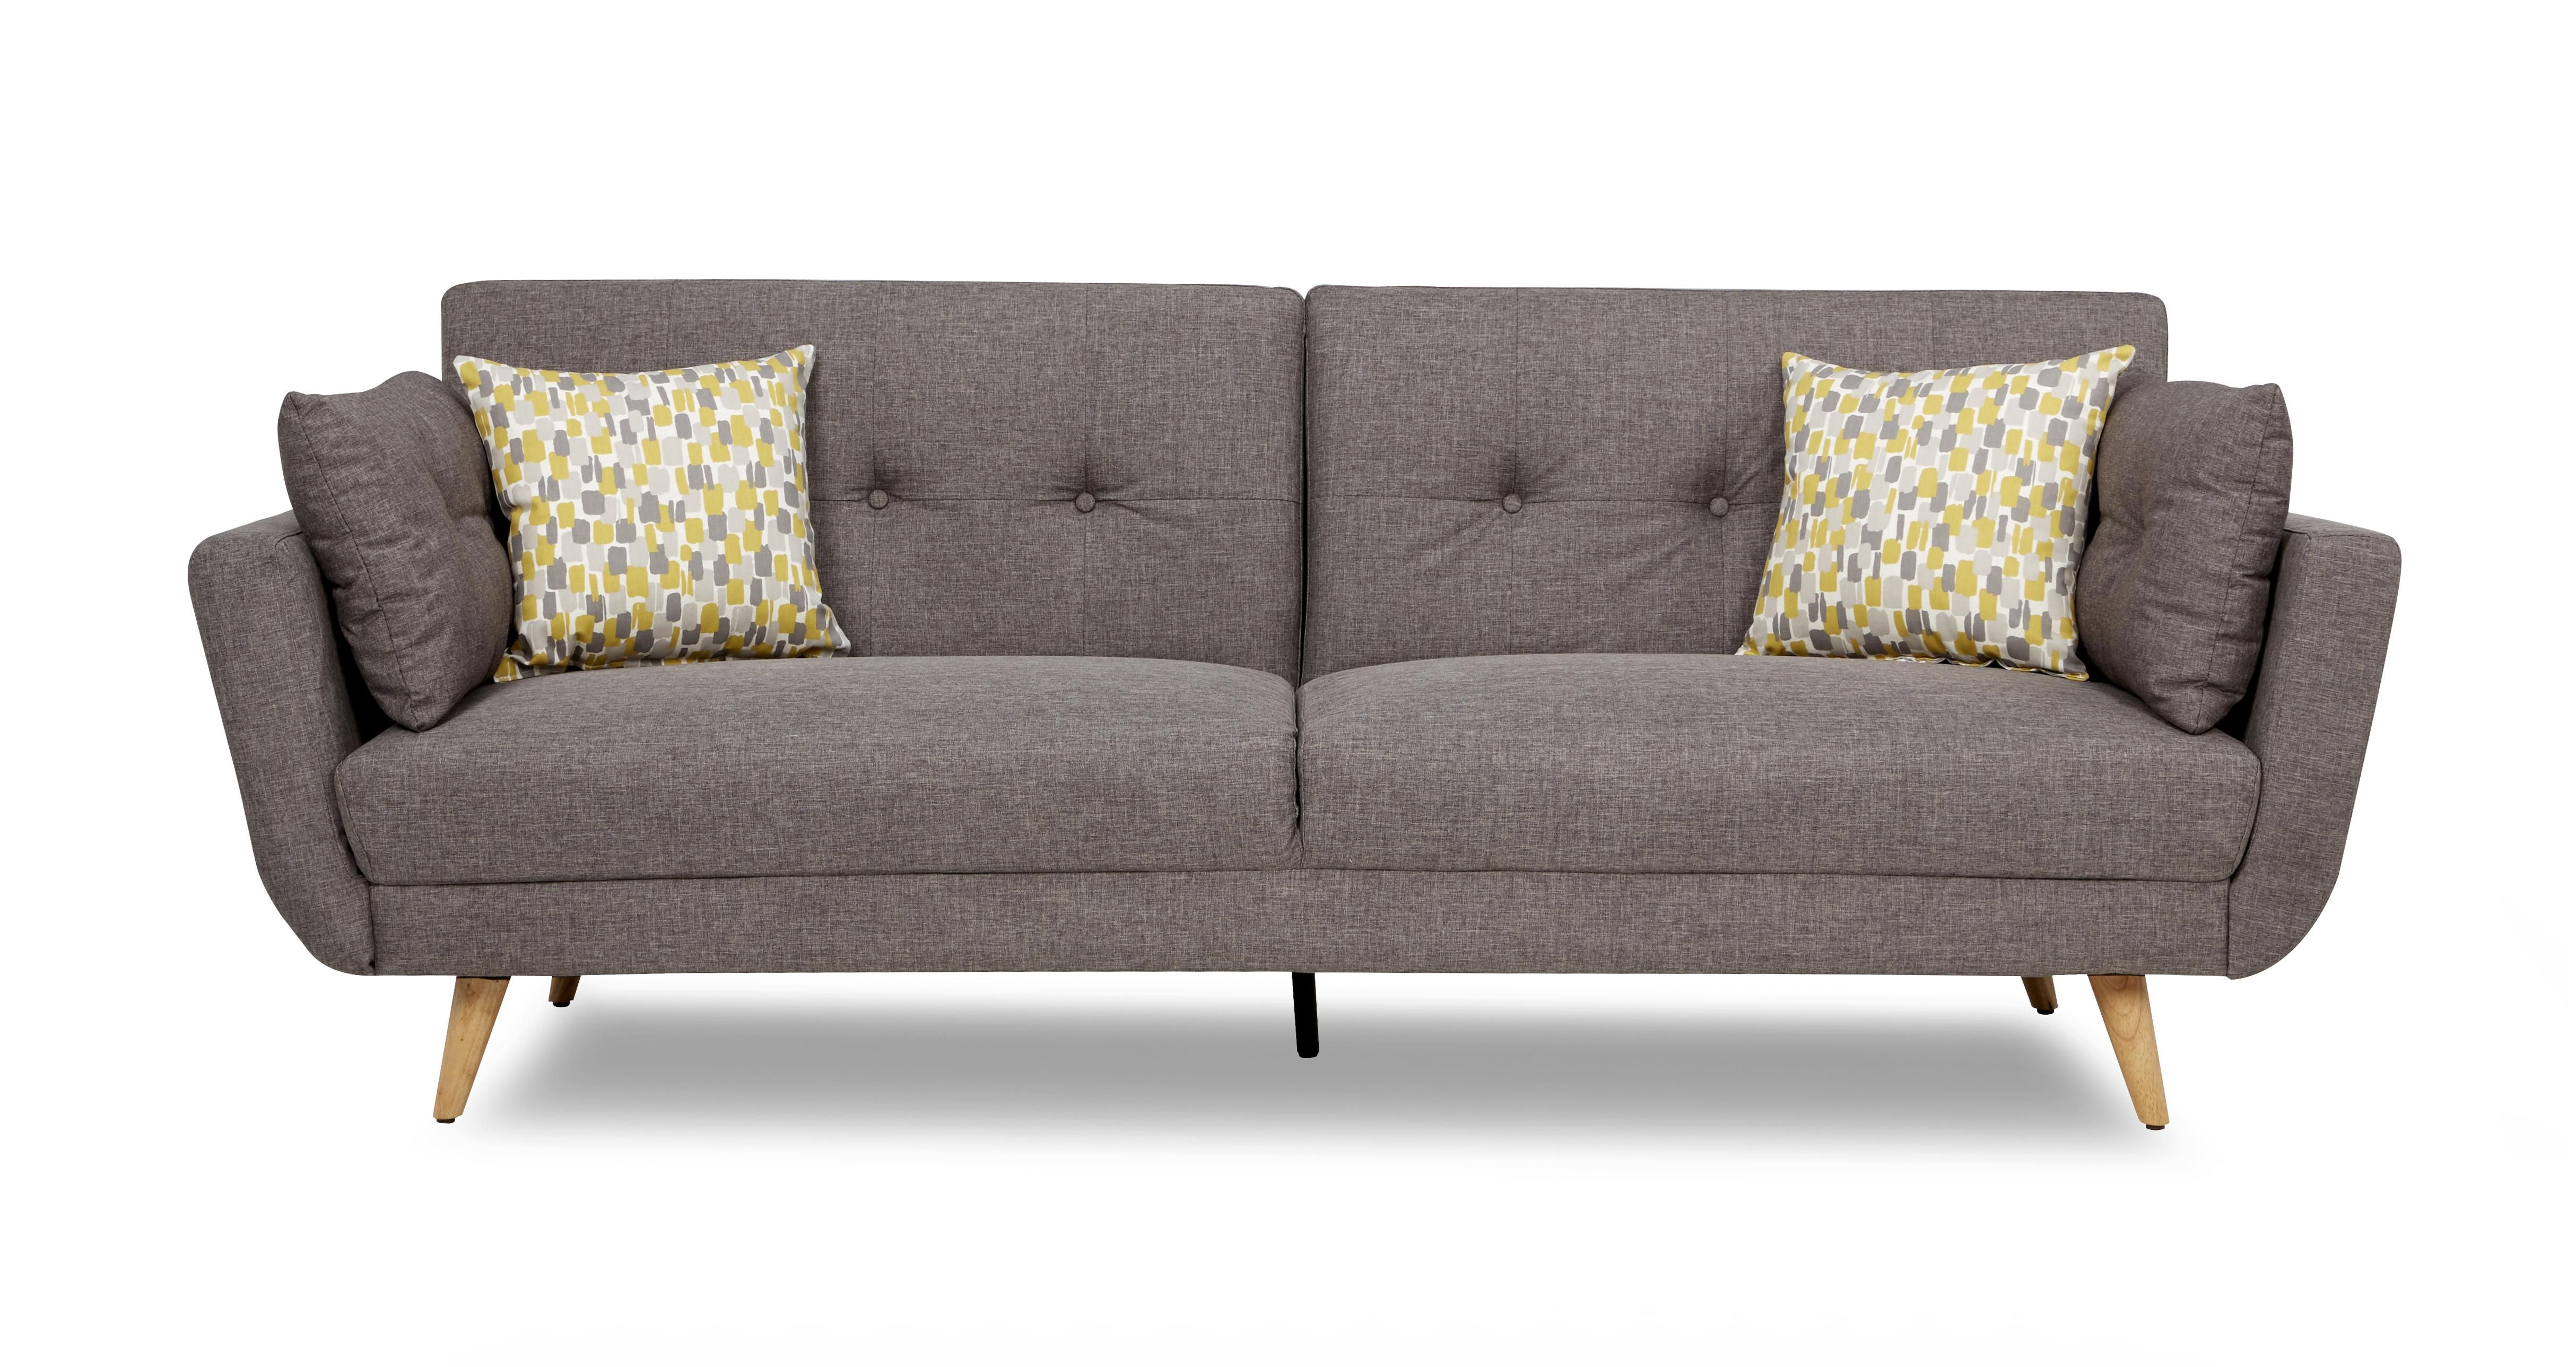 About The Inca Sofabed In 2020 Retro Sofa Sofa Bed Sofa Bed Uk